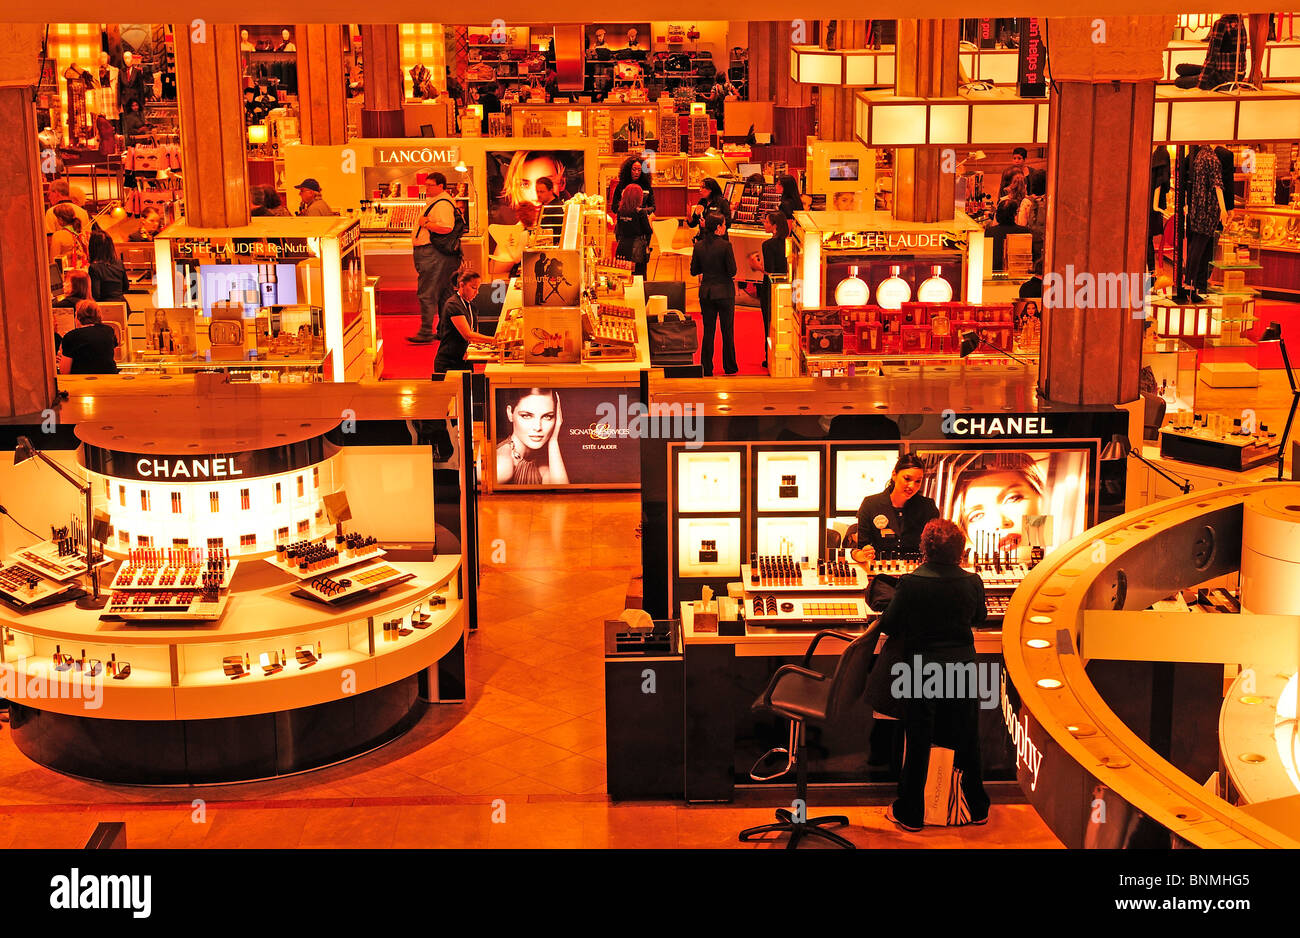 Image result for makeup counters at macy's 34street in the 80's